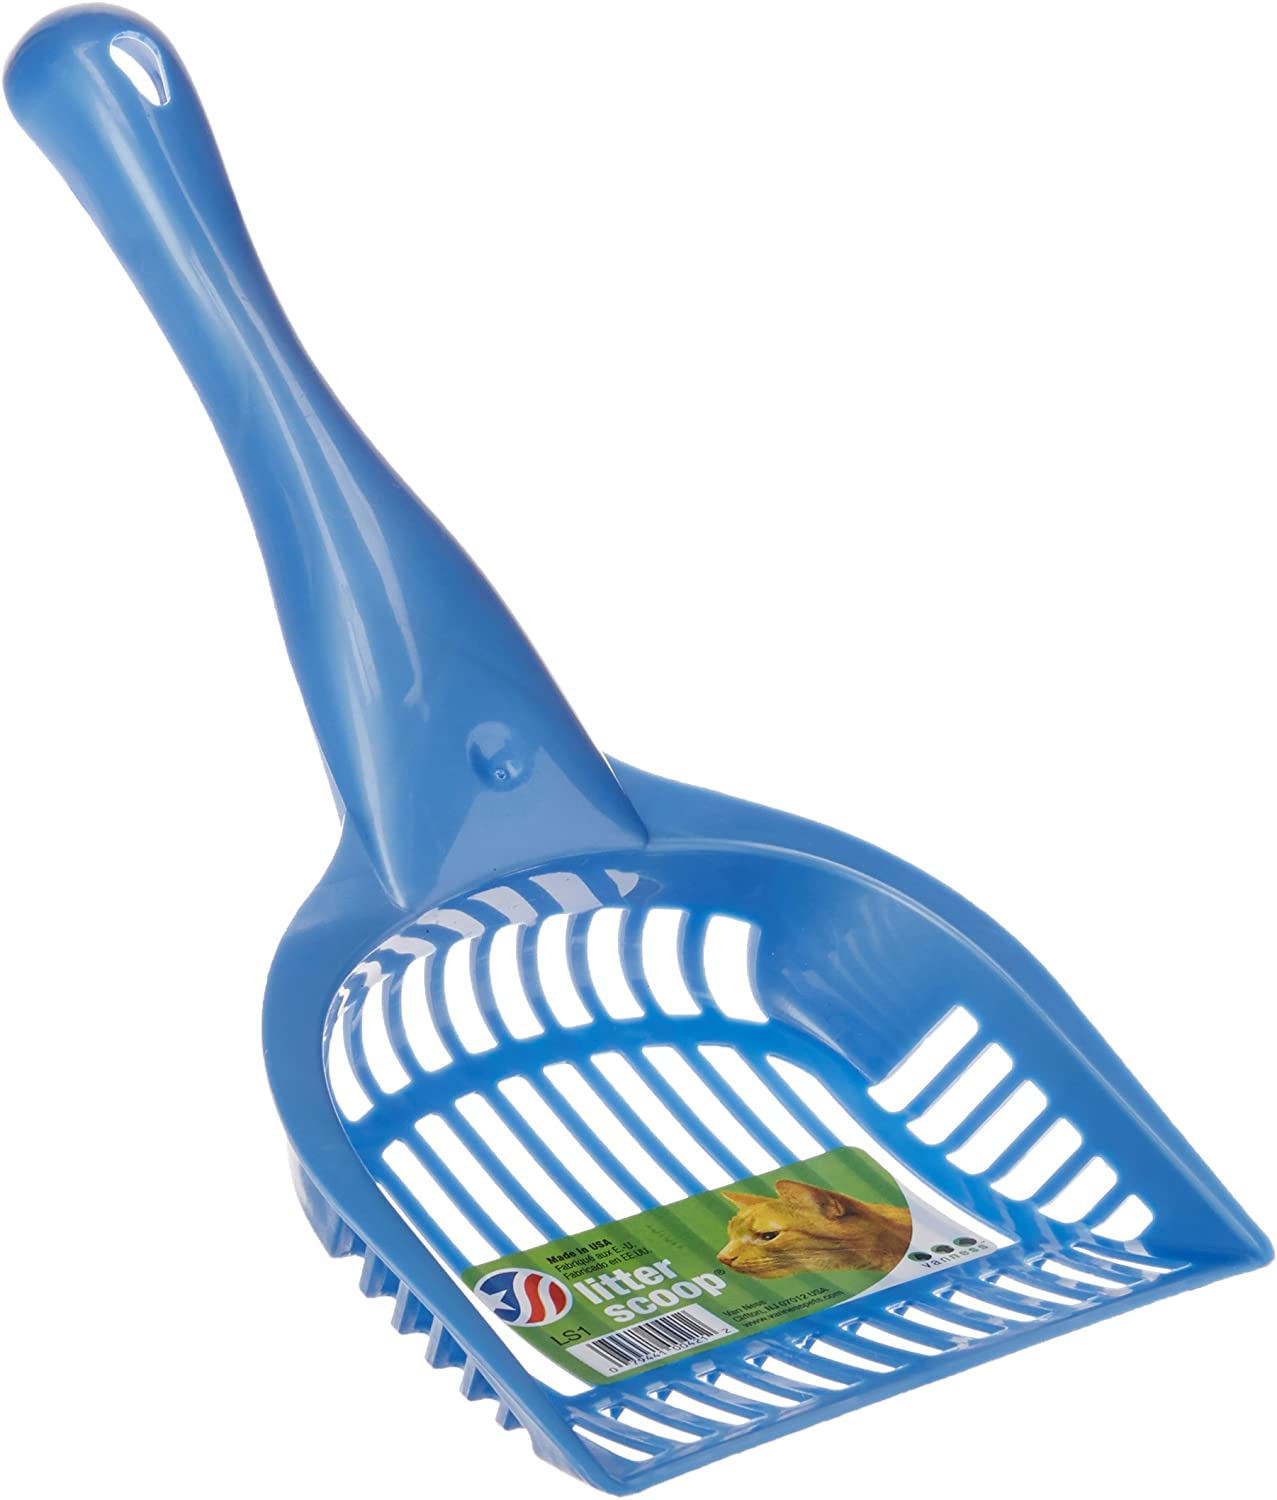 Cats Litter Scoop Giant High Polished Finish Van Ness 4 Pack